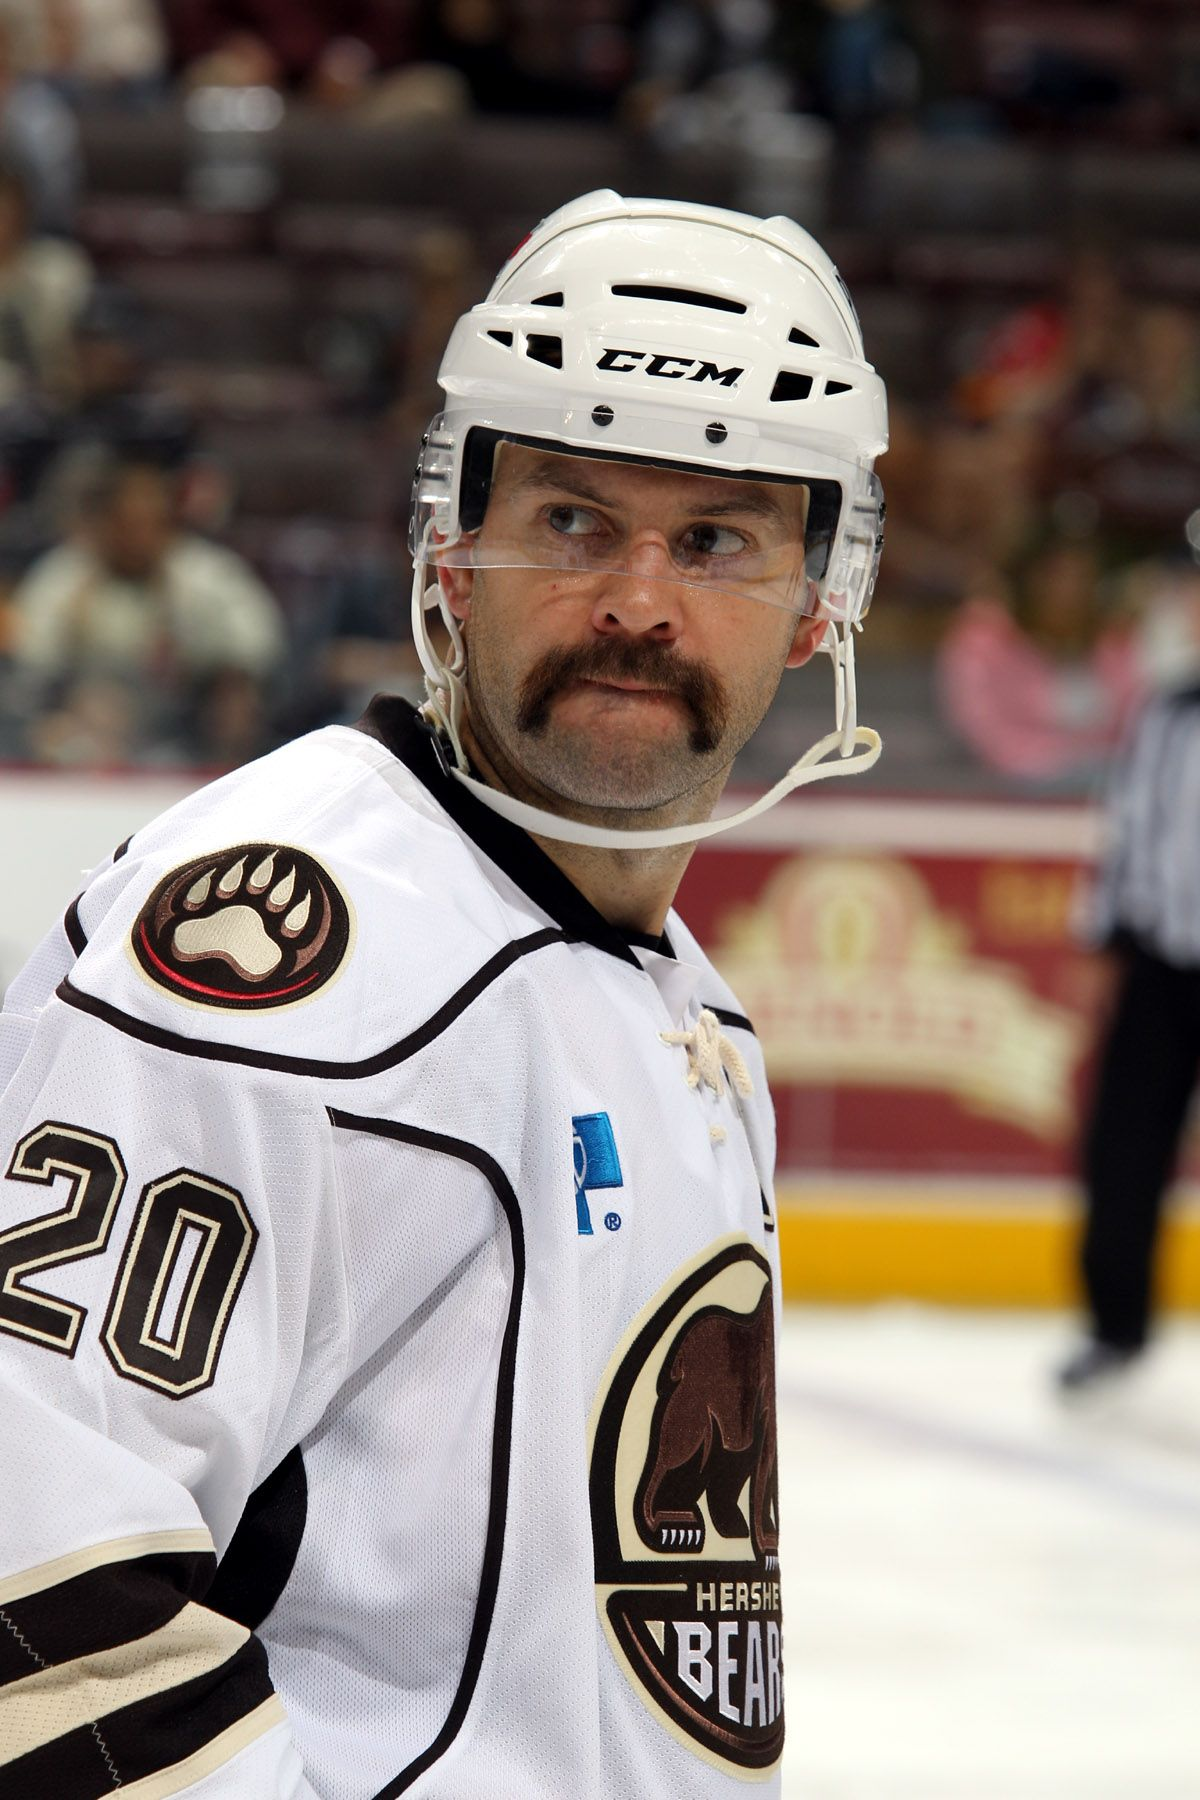 6fb9889ac41 11.02.13 - Hershey Bears player